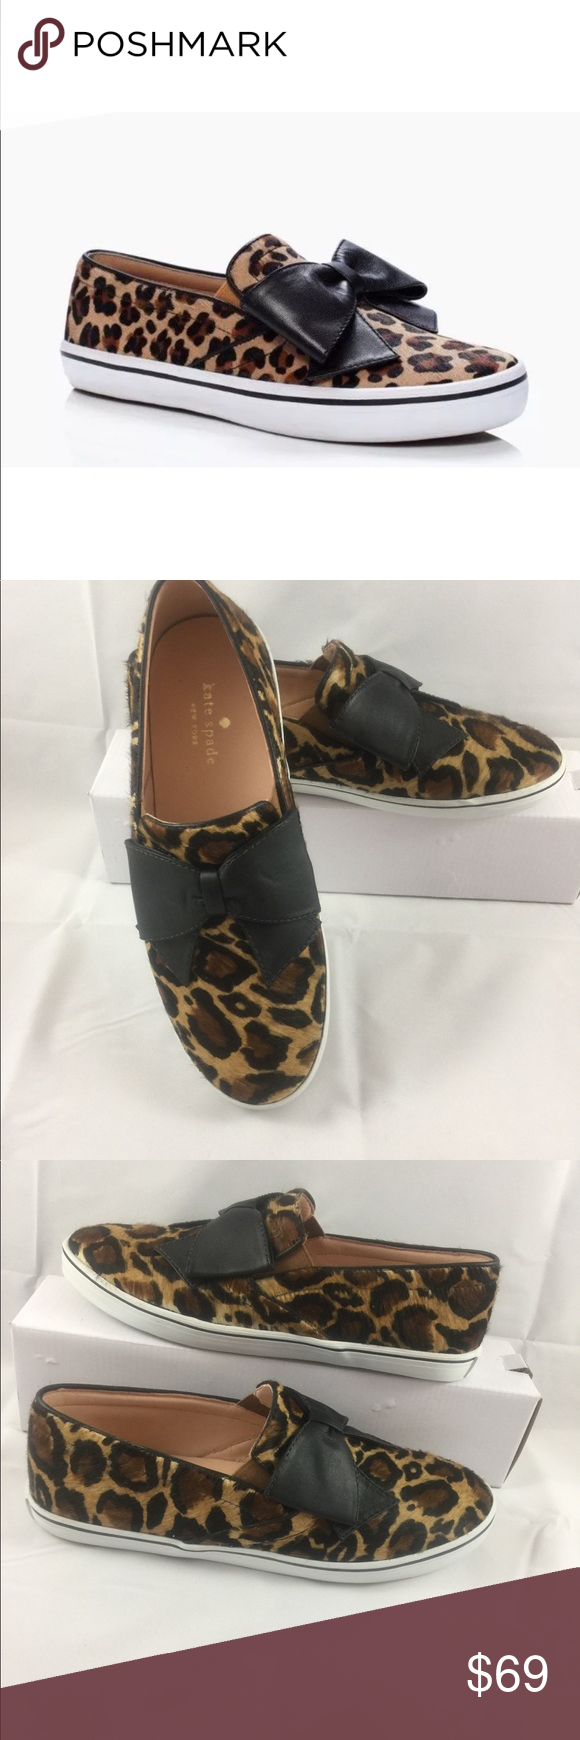 b04afd60ab55 Kate Spade Delise Leopard Print Sneakers Shoes 9